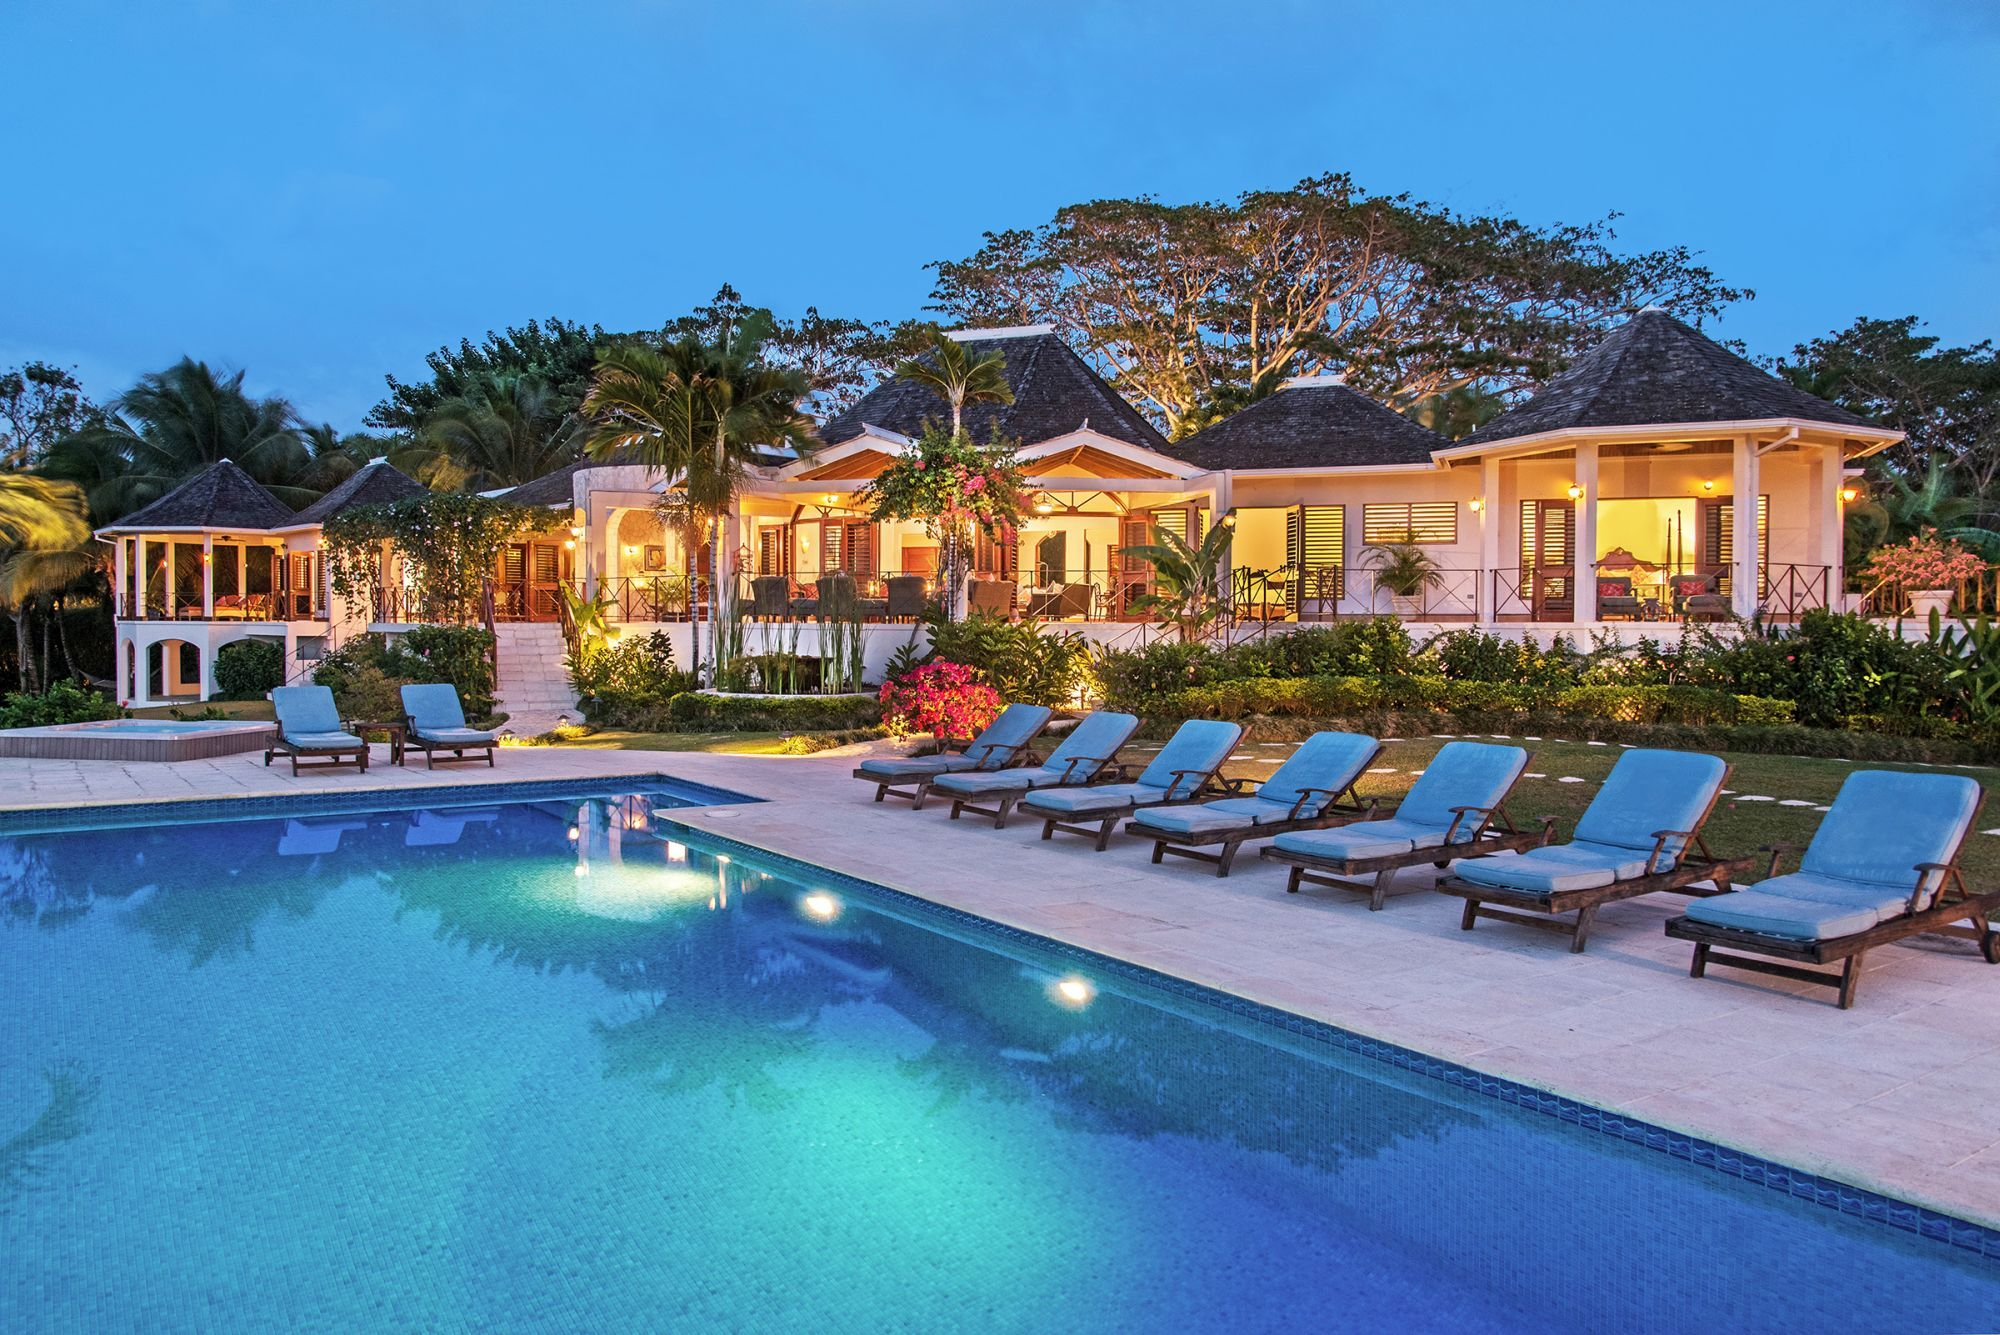 Swimming Pool And Facade Of Infinity, Jamaica